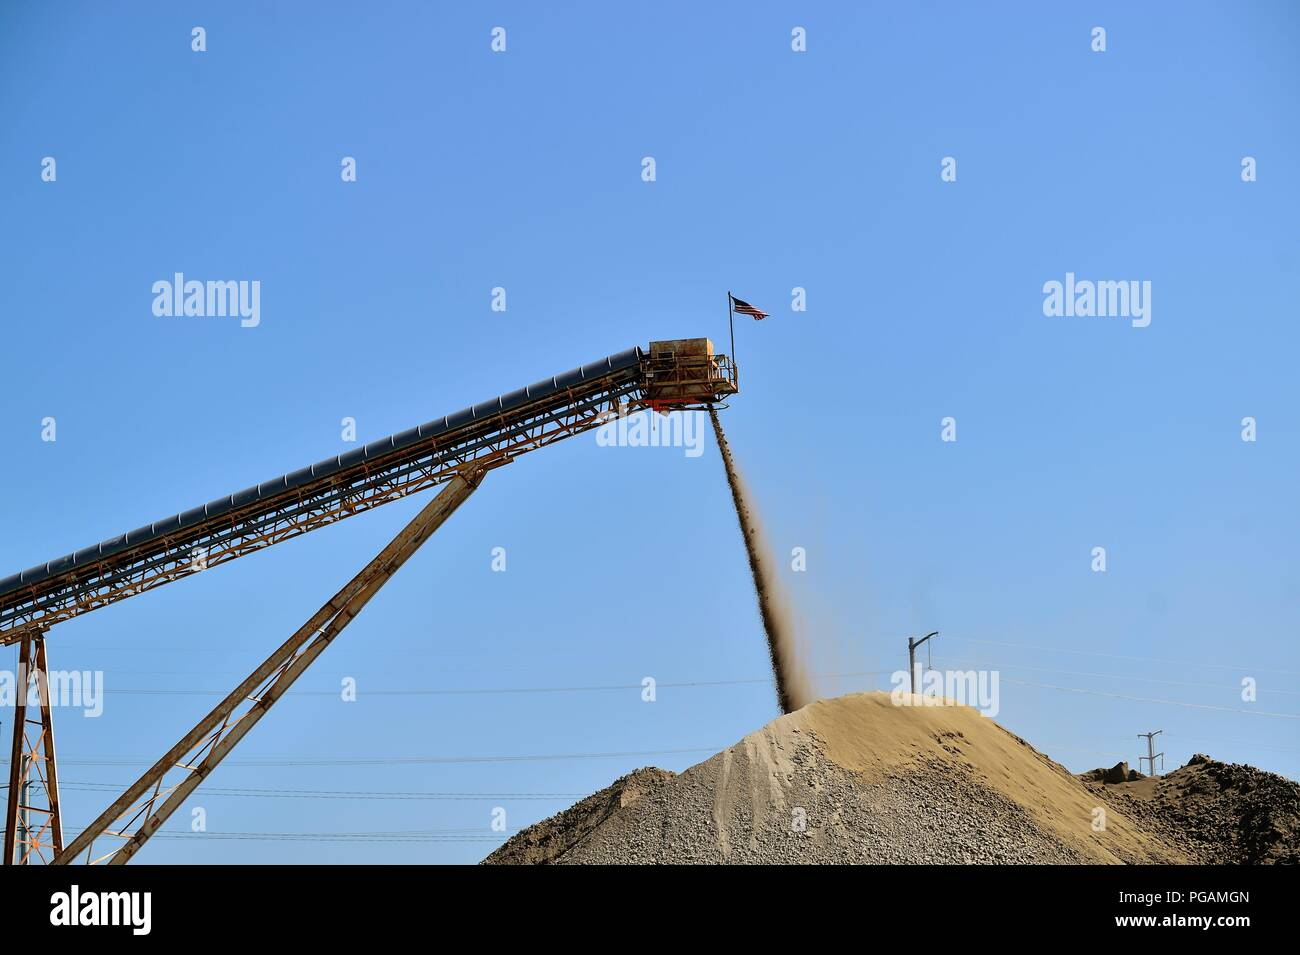 South Elgin, Illinois, USA. A conveyor belt delivers stone and gravel to form a large pile of material at a ready mix concrete plant. - Stock Image